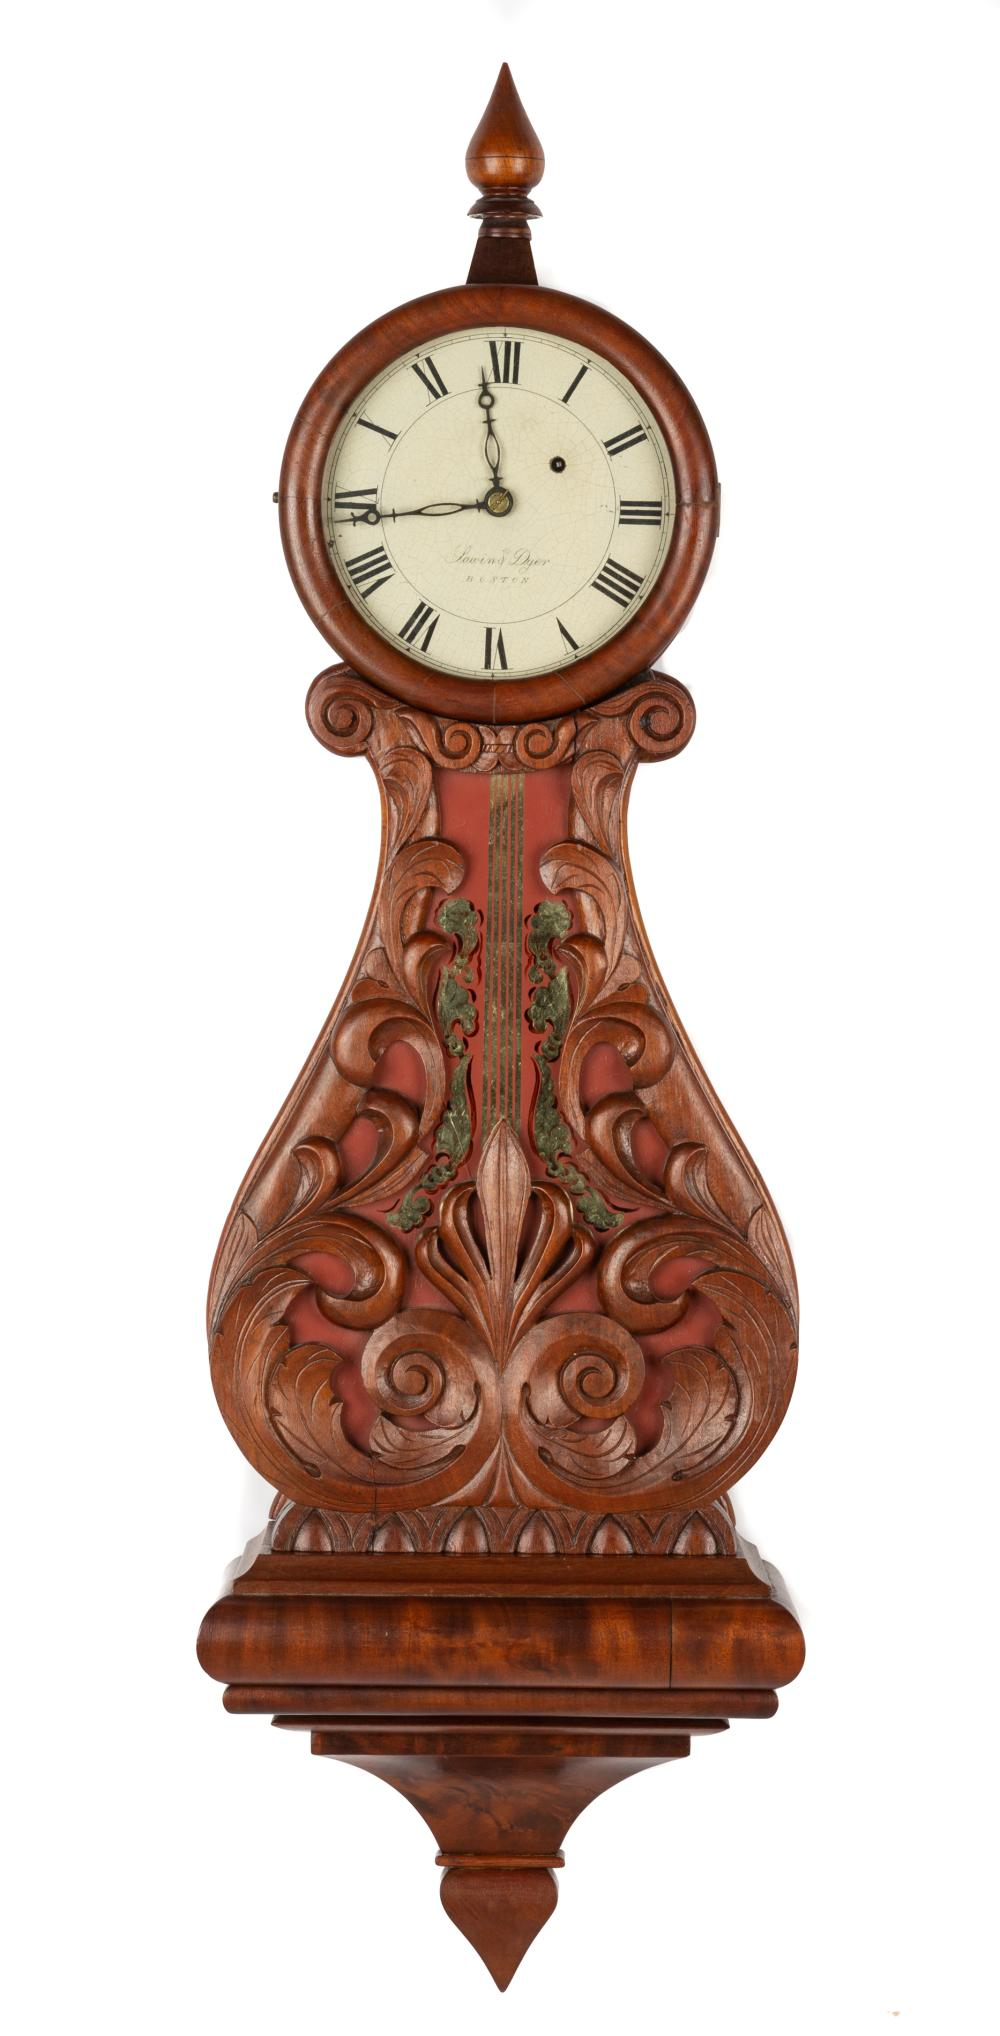 Sawin and Dyer, Boston, Lyre Clock